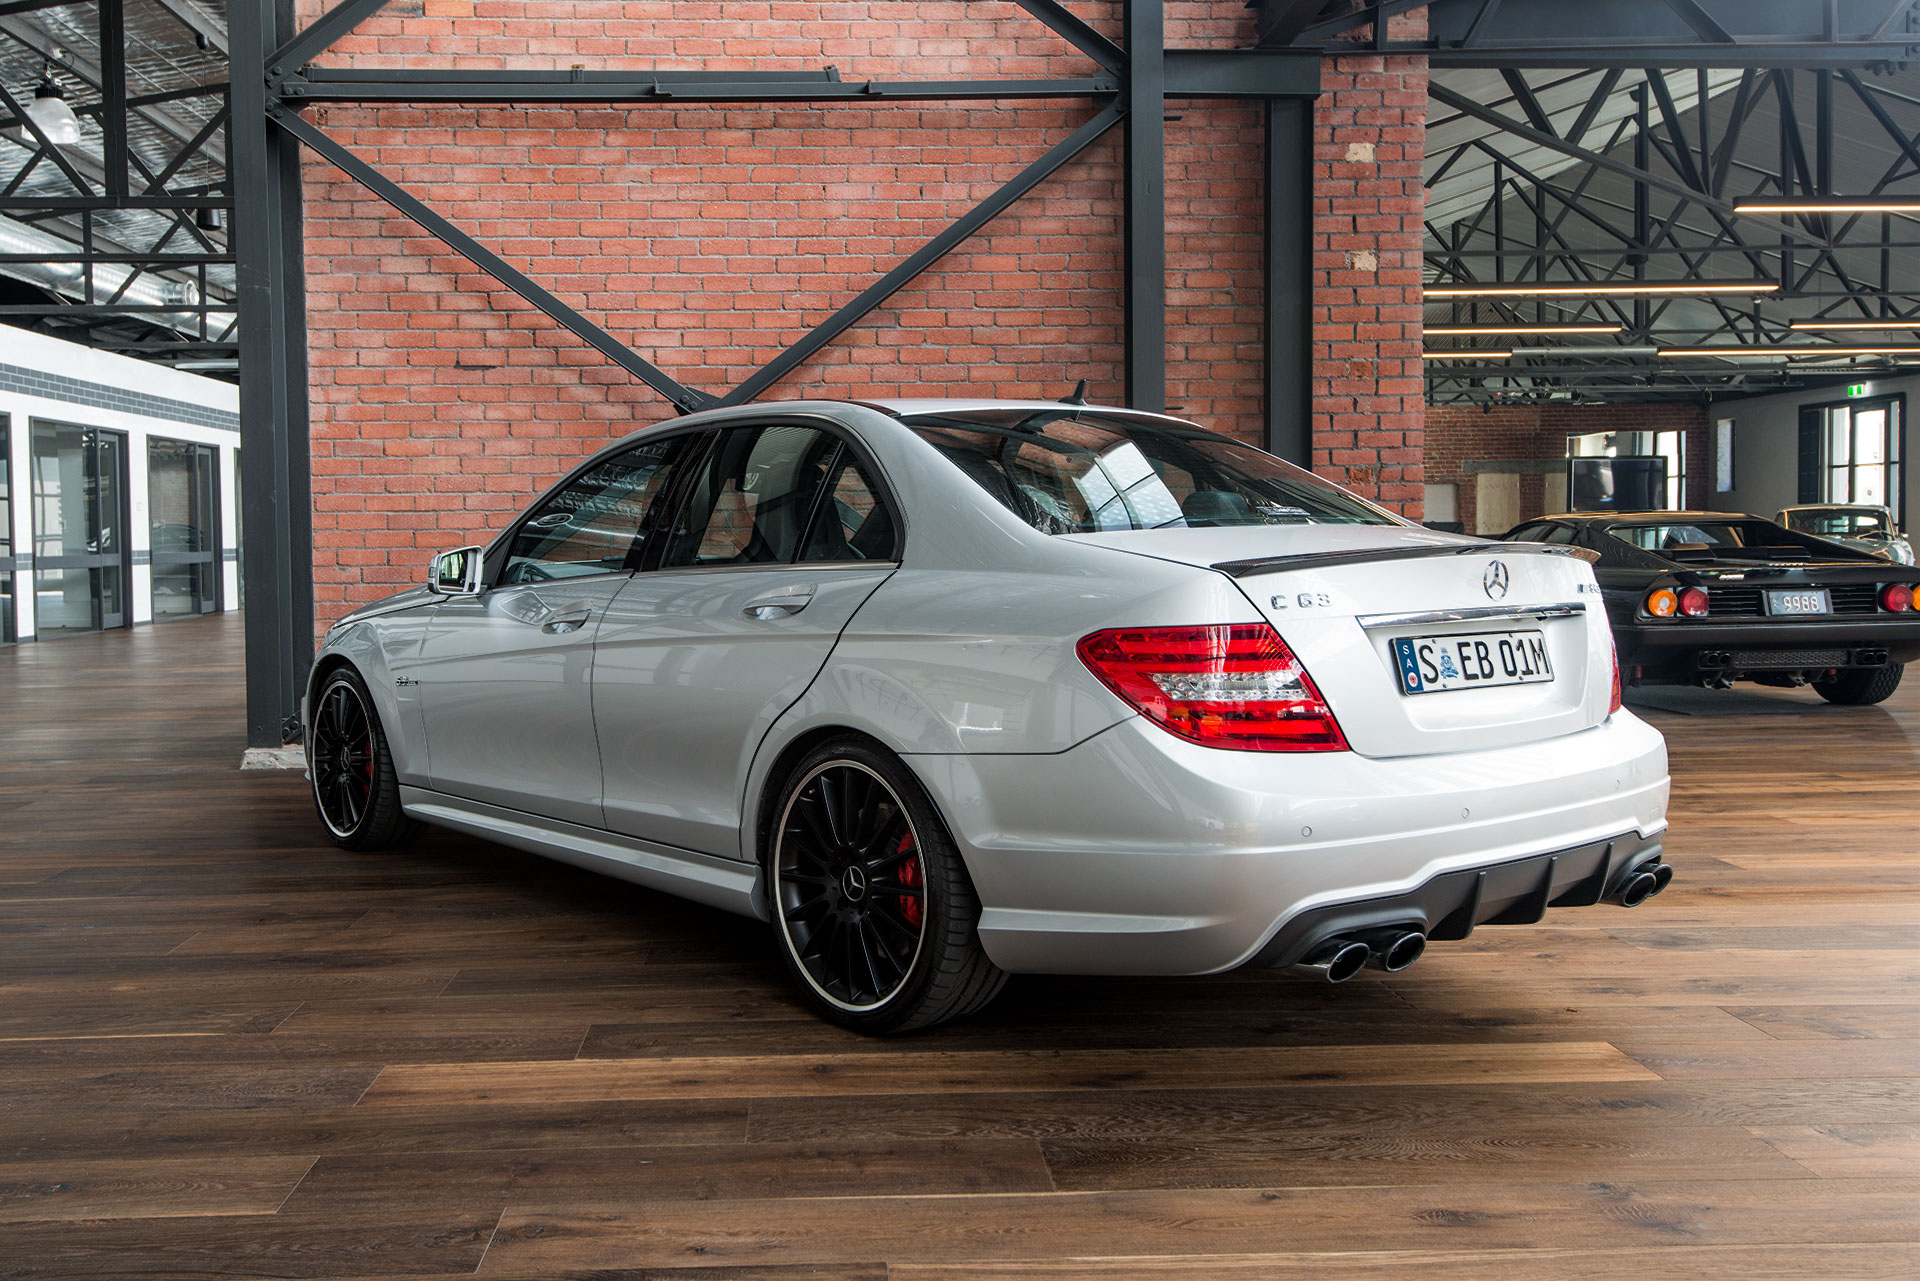 Mercedes For Sale >> 2012 Mercedes C63 AMG Performance - Richmonds Classic ...